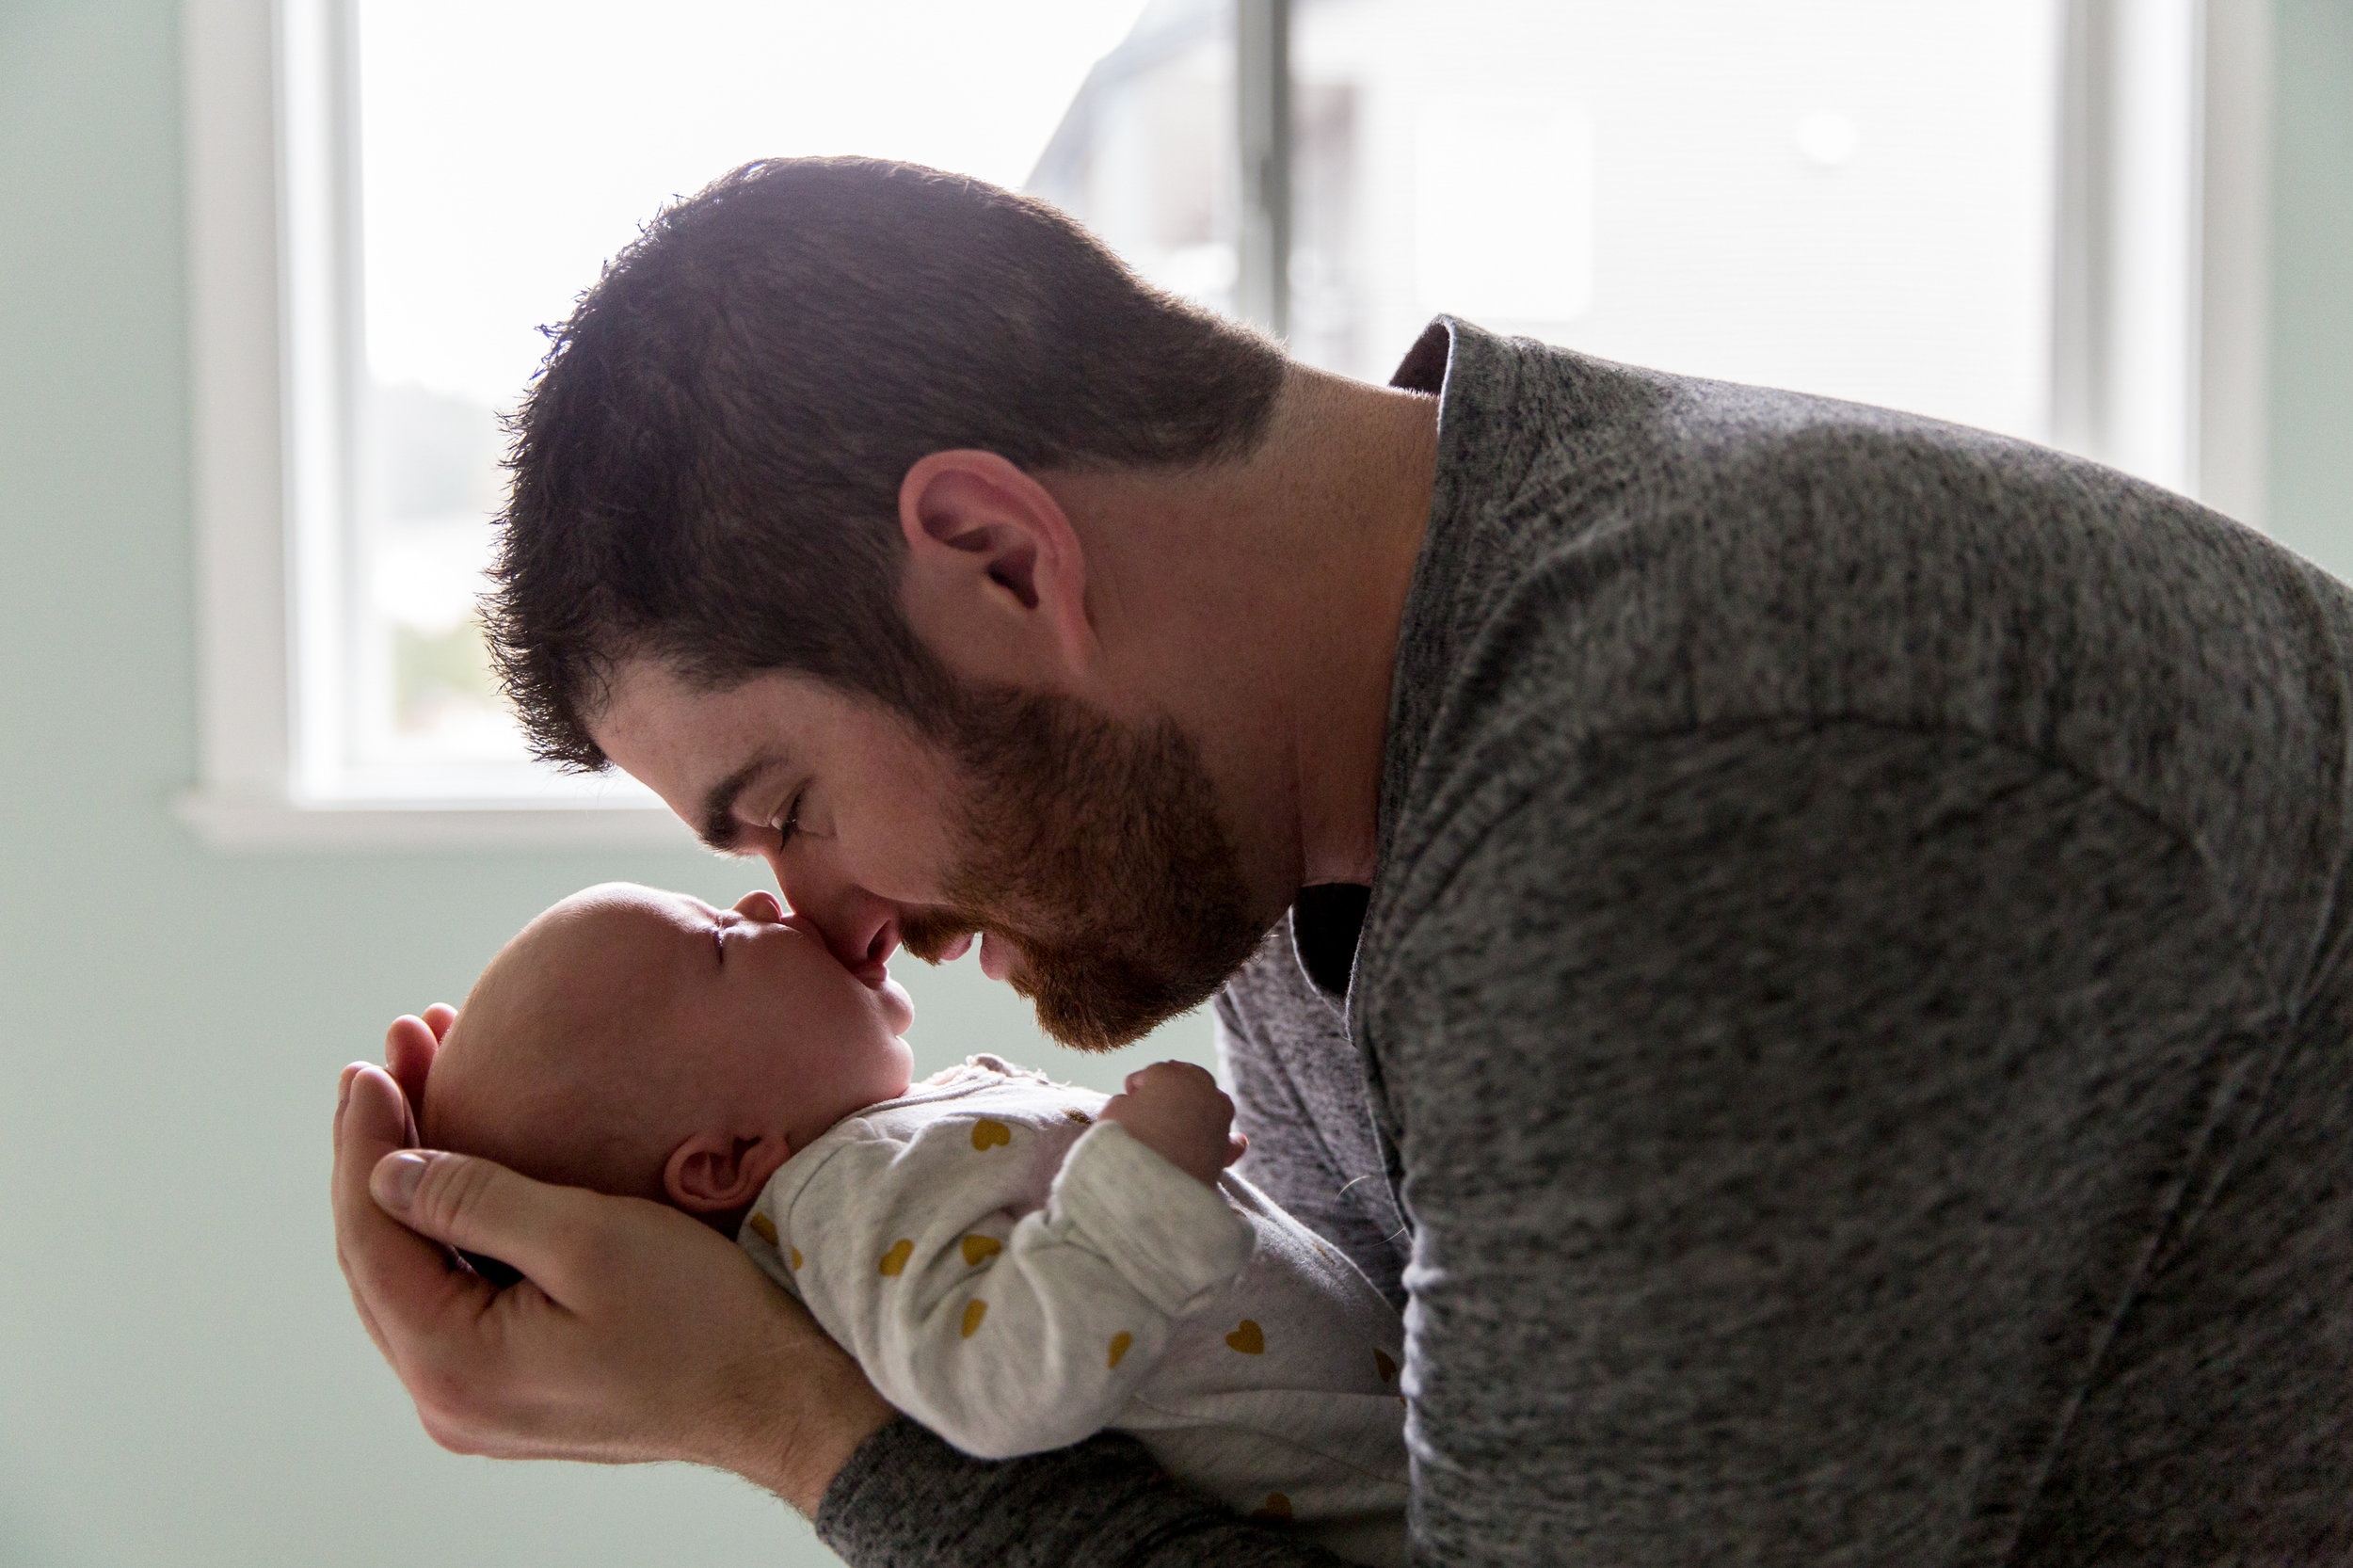 dad and baby on bed by window vancouver